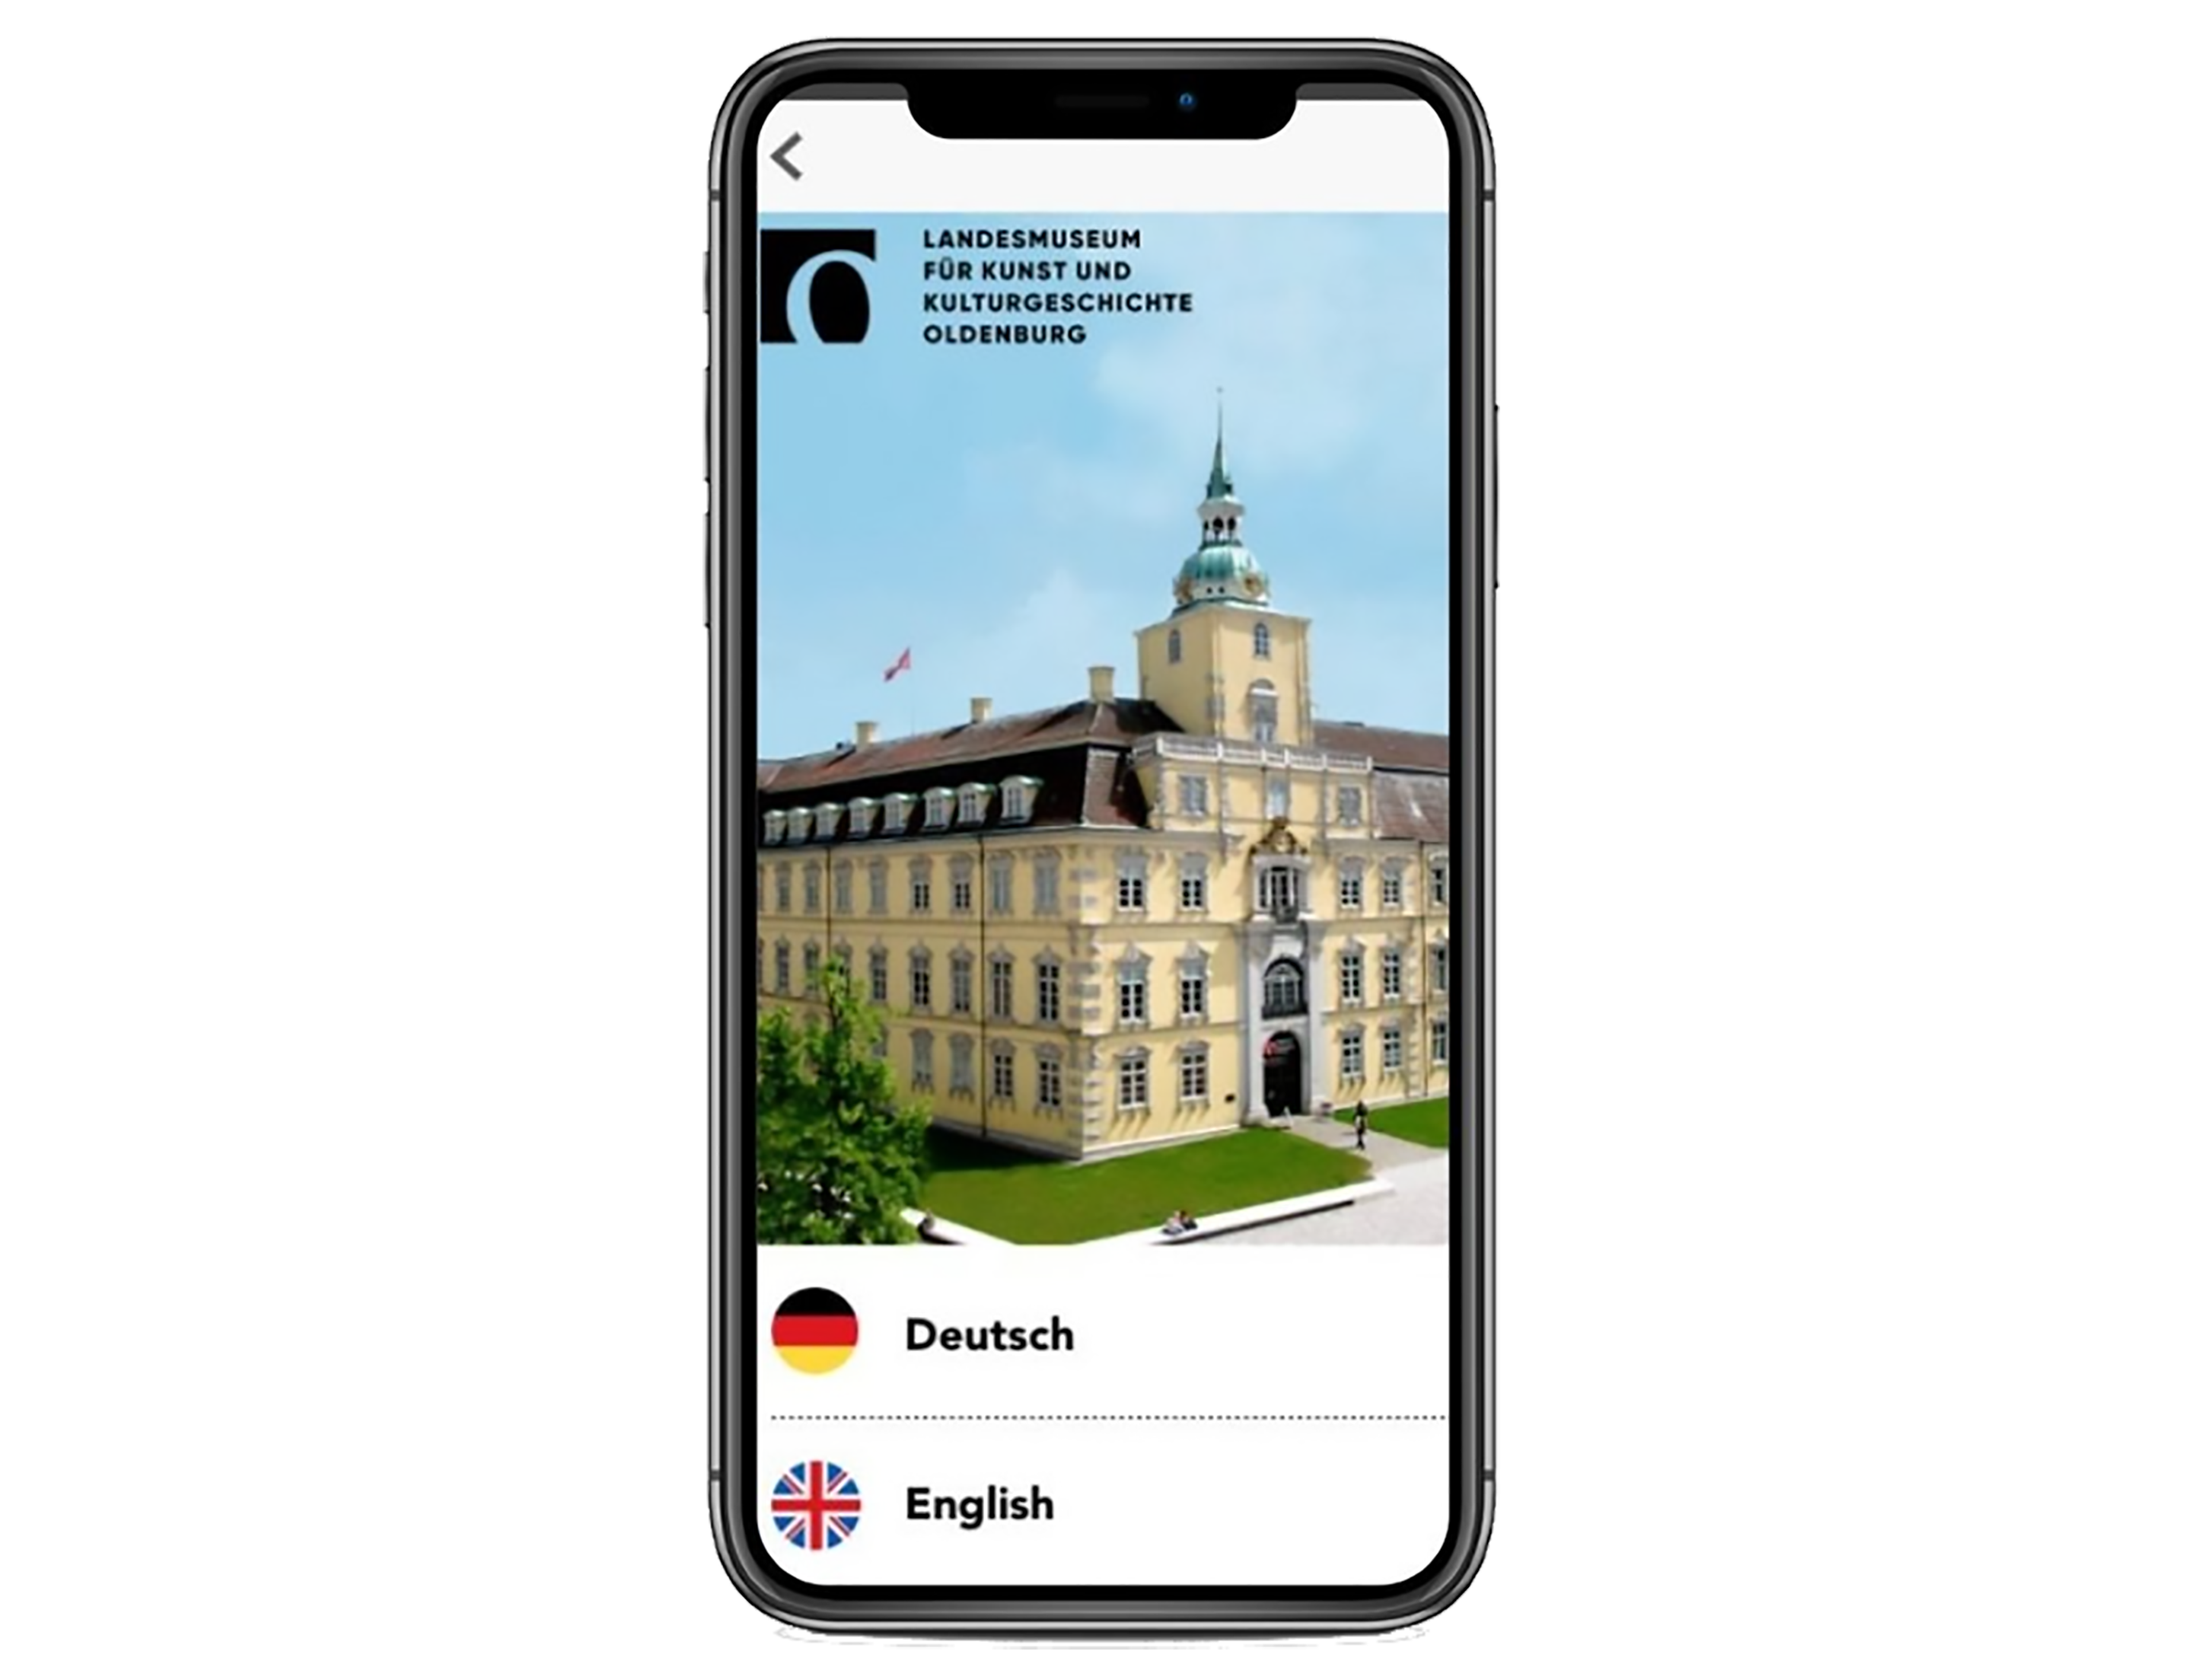 Handy mit Landesmuseum Oldenburg App